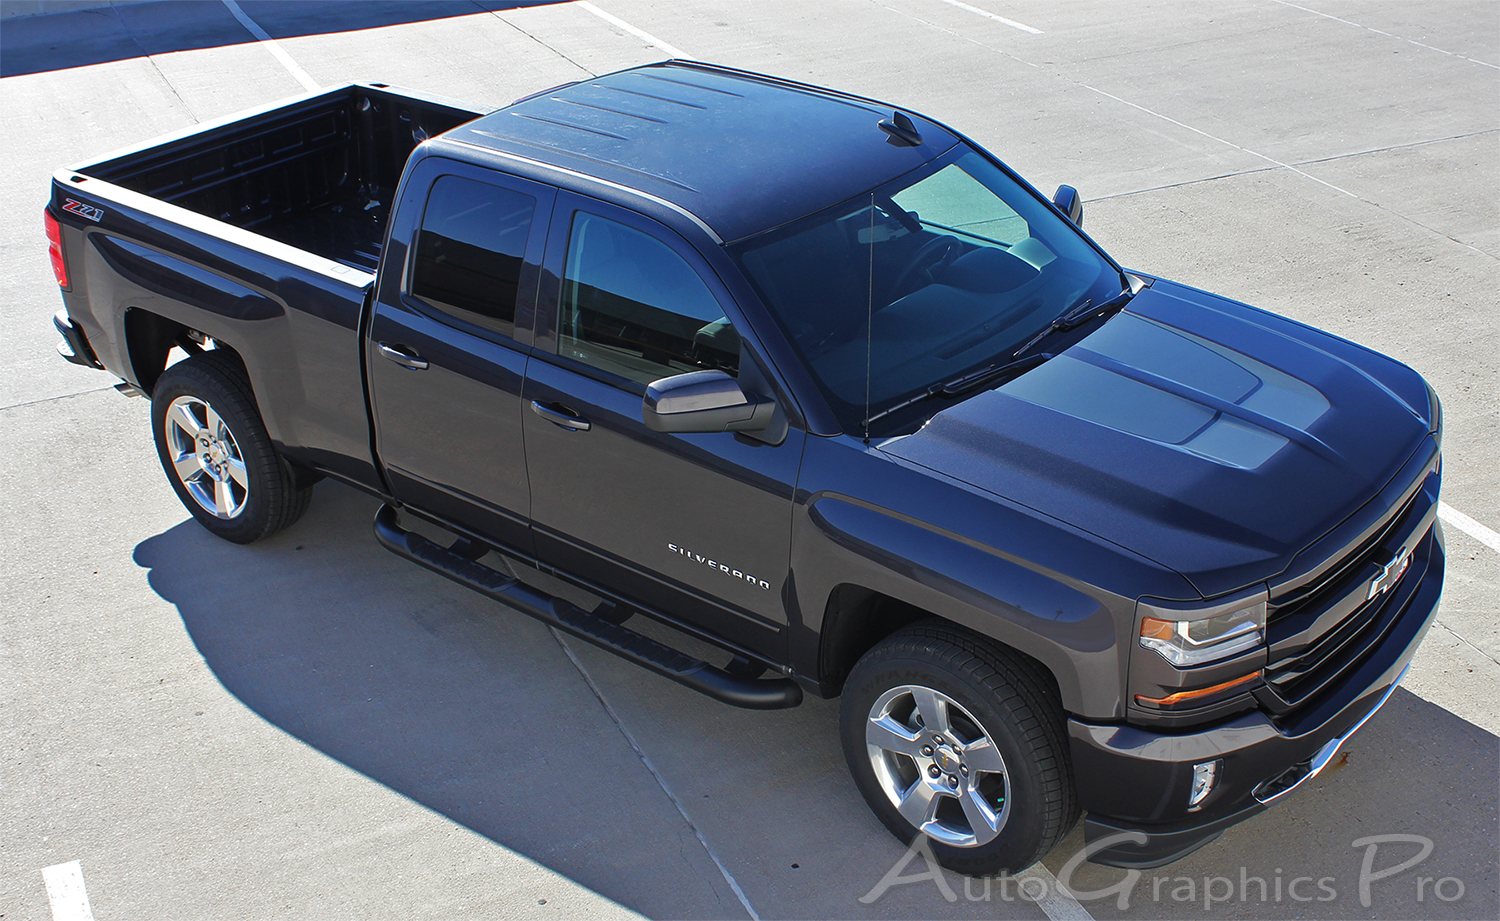 2016 2017 2018 Chevy Silverado Hood Stripes Chase Rally 1500 Decals Special Edition Truck Racing Vinyl Graphics Kit